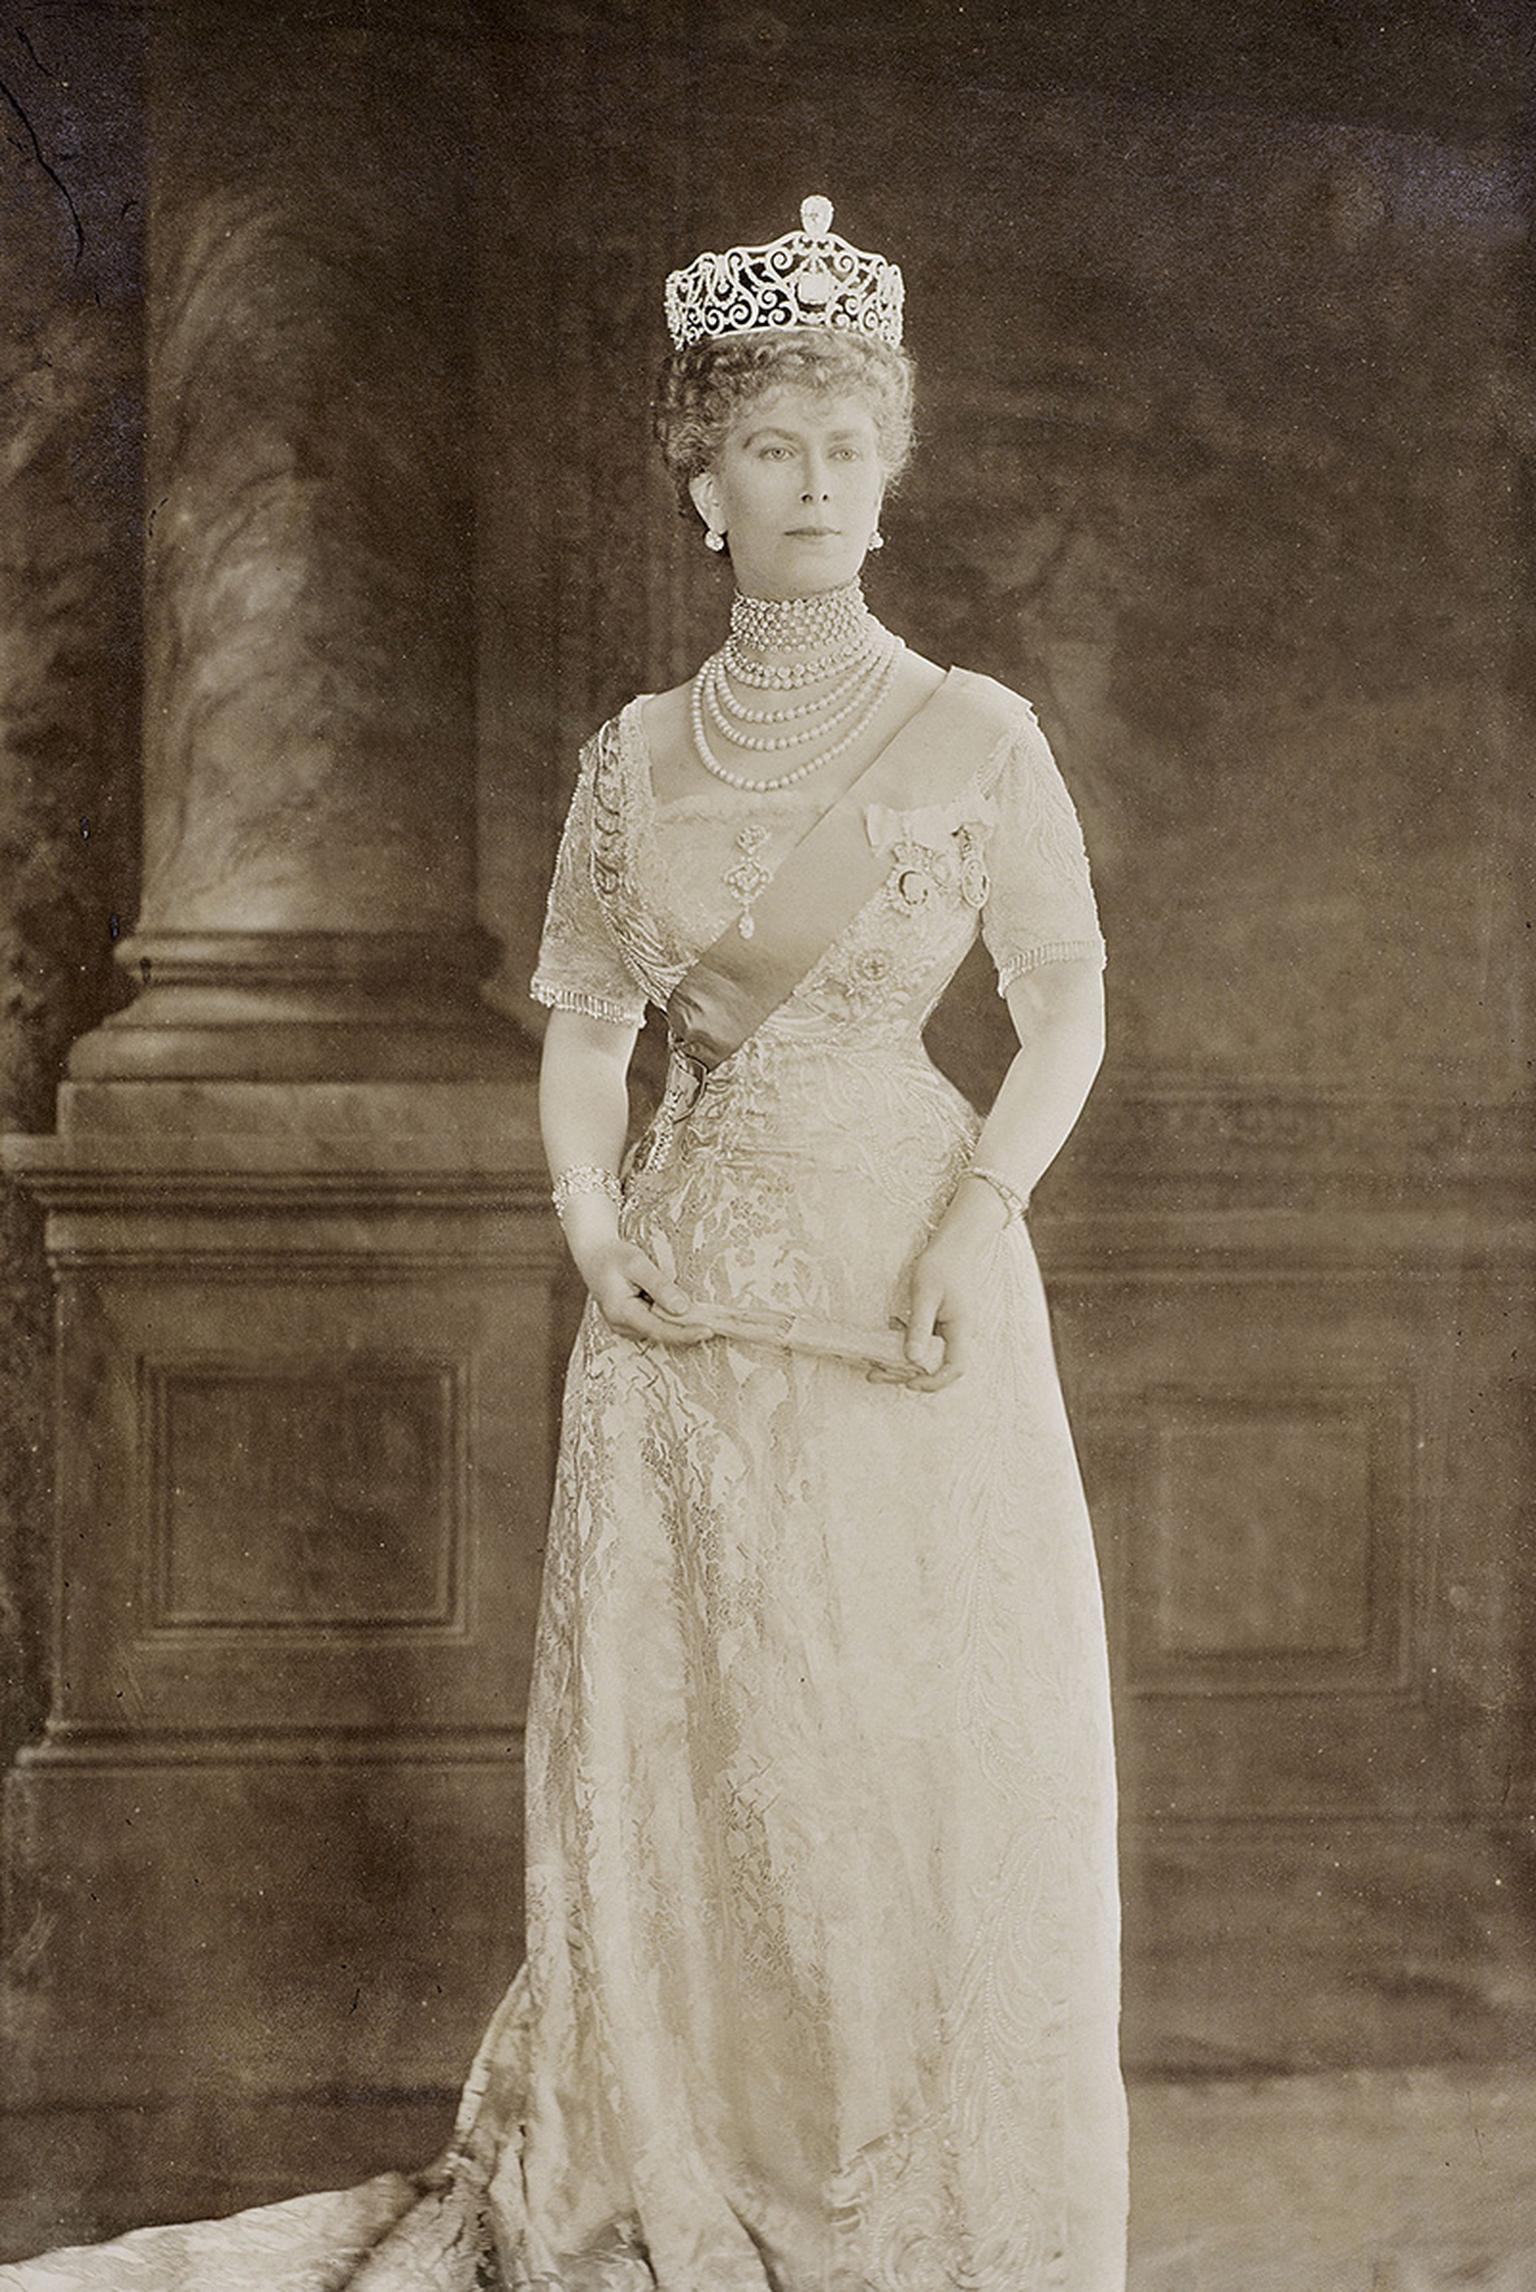 Queen-Mary-wears-the-Delhi-Durbar-Tiara-set-with-Cullinan-III-and-IV,-1912,-Thomson-.jpg